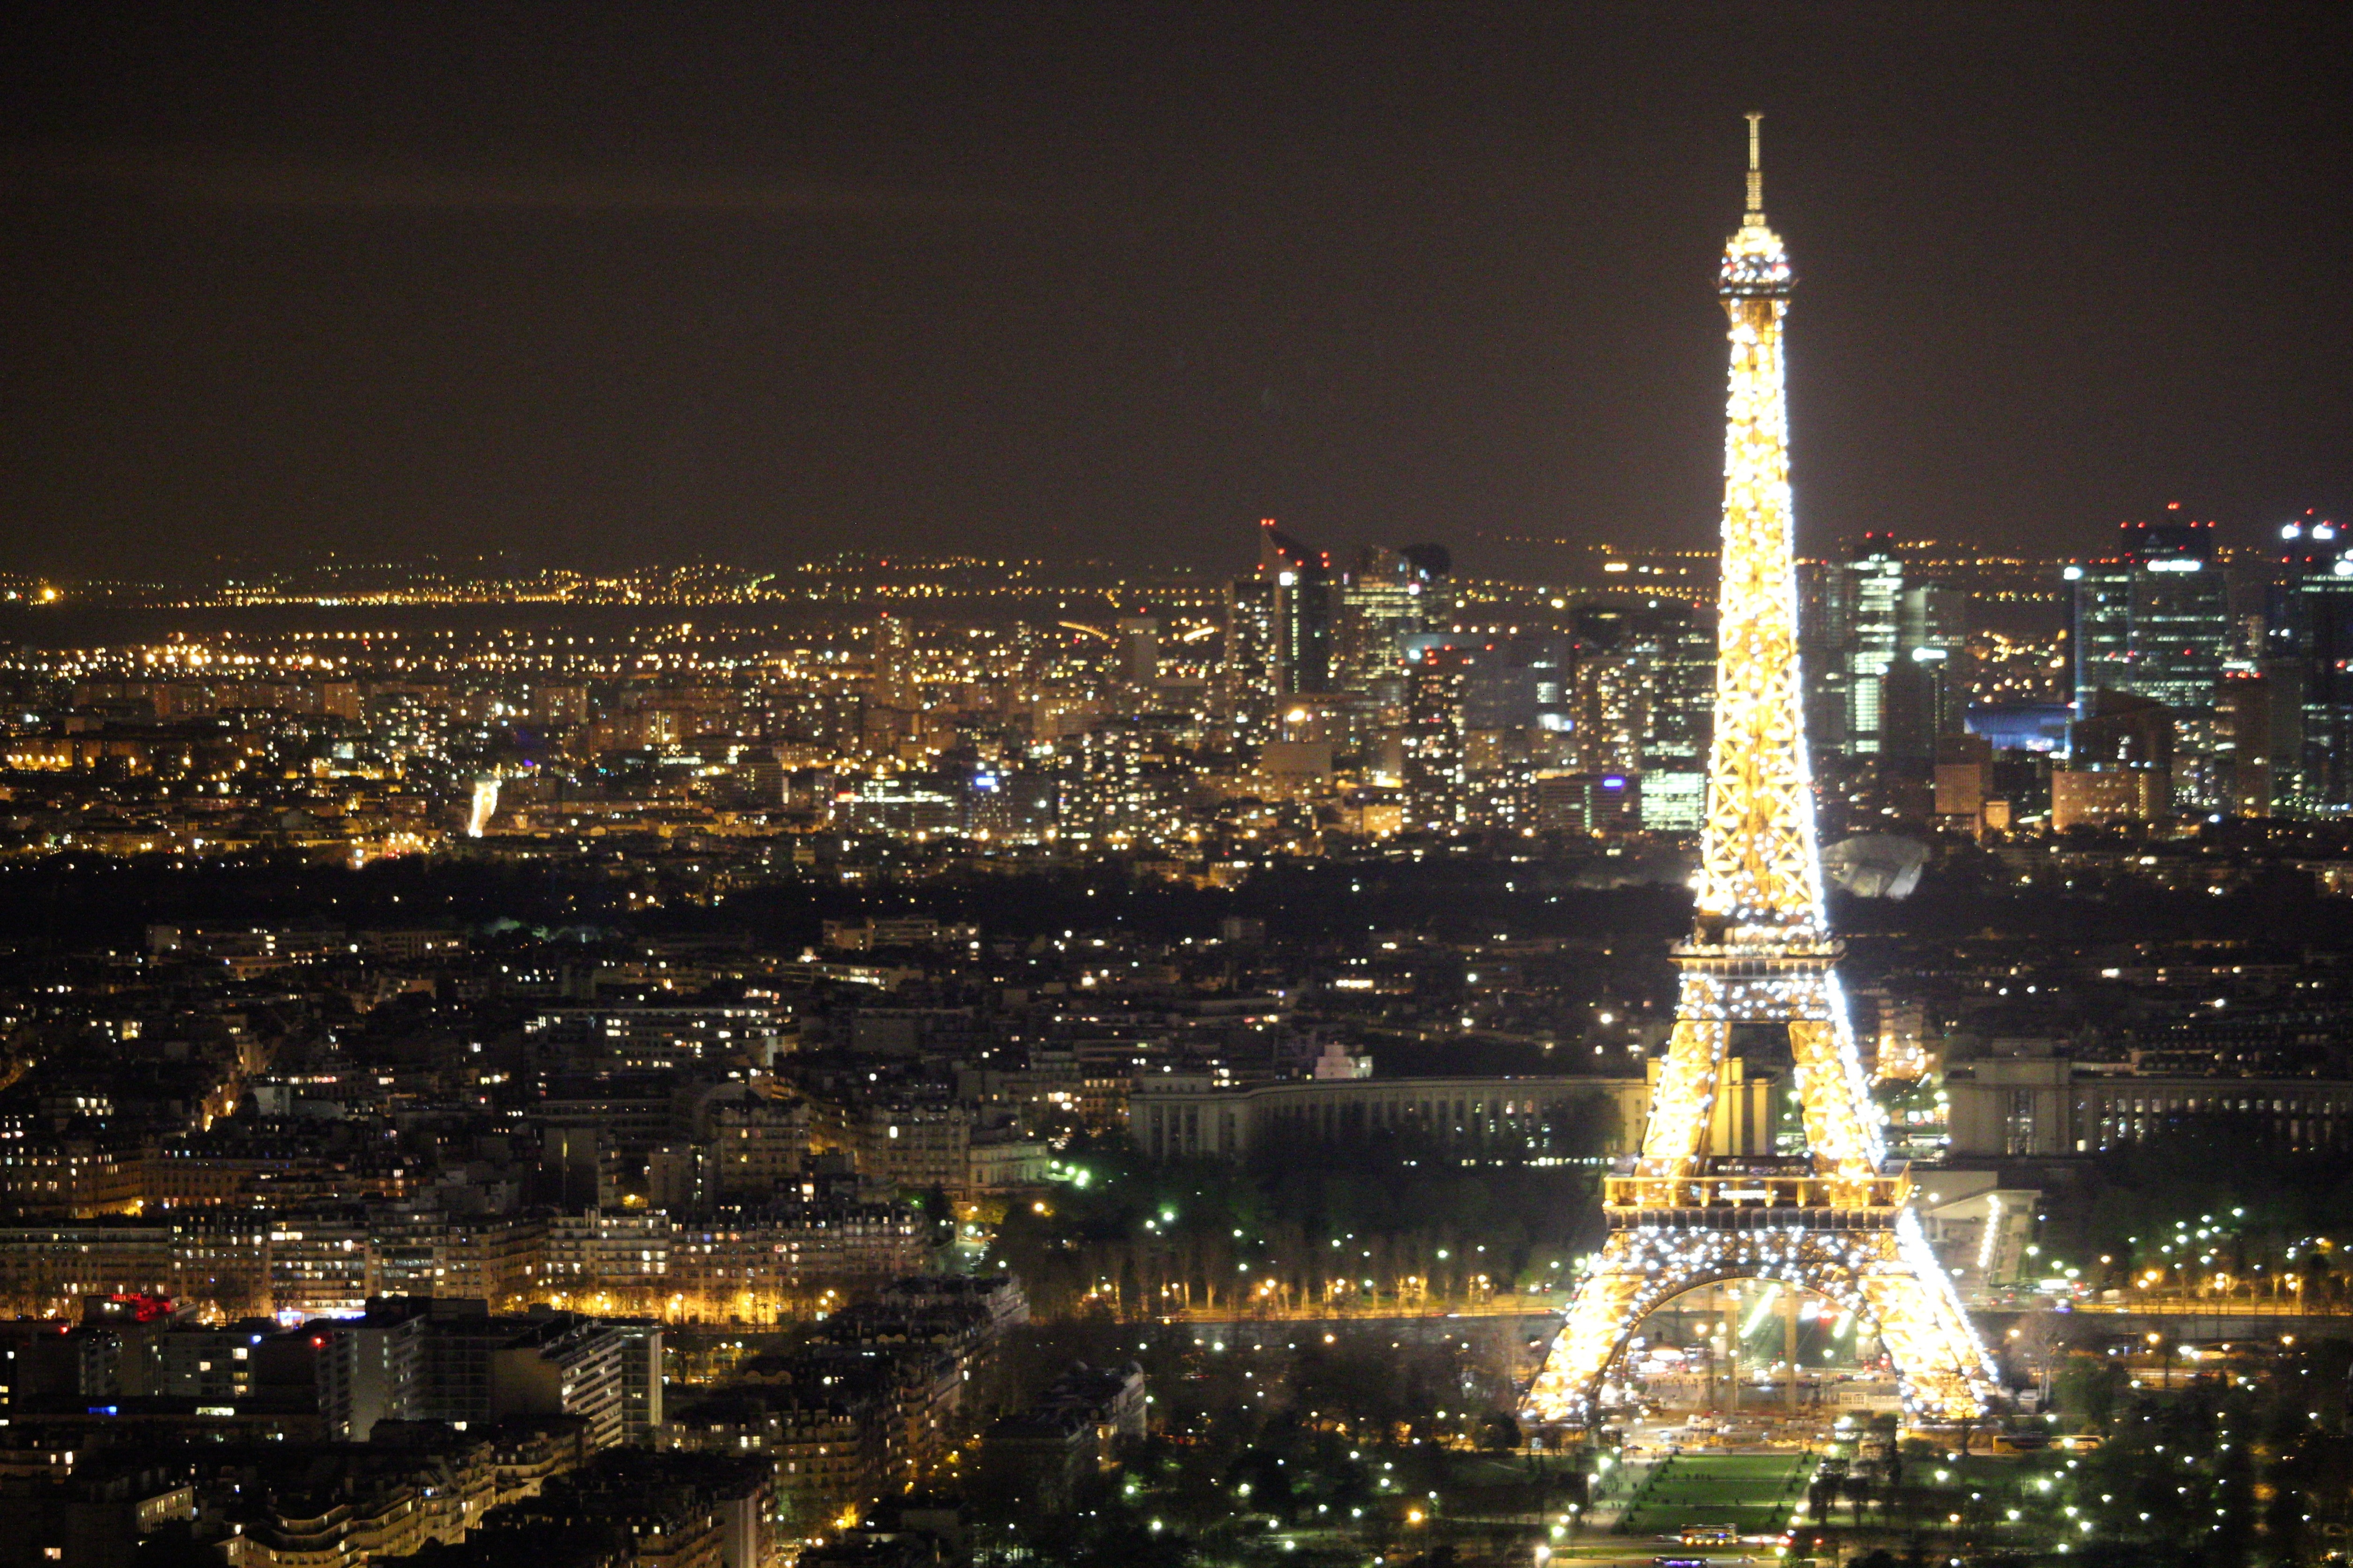 Modern languages @ flcc: france study abroad 2014 photo